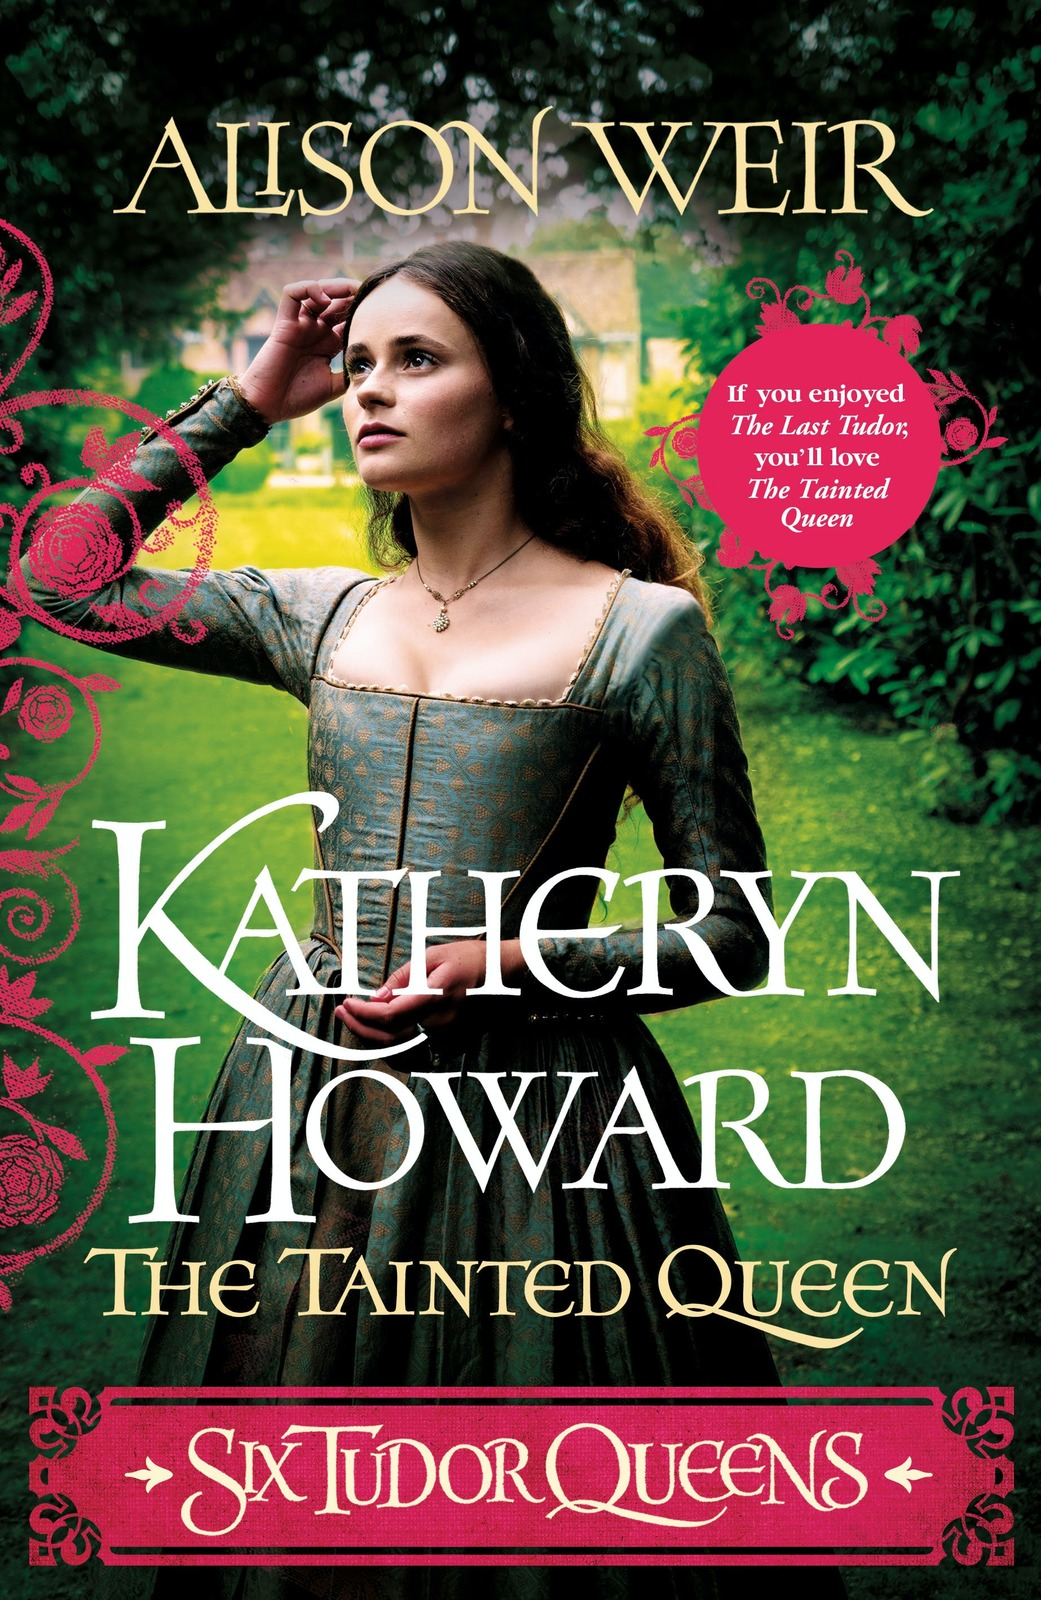 Six Tudor Queens: Katheryn Howard, The Tainted Queen by Alison Weir image